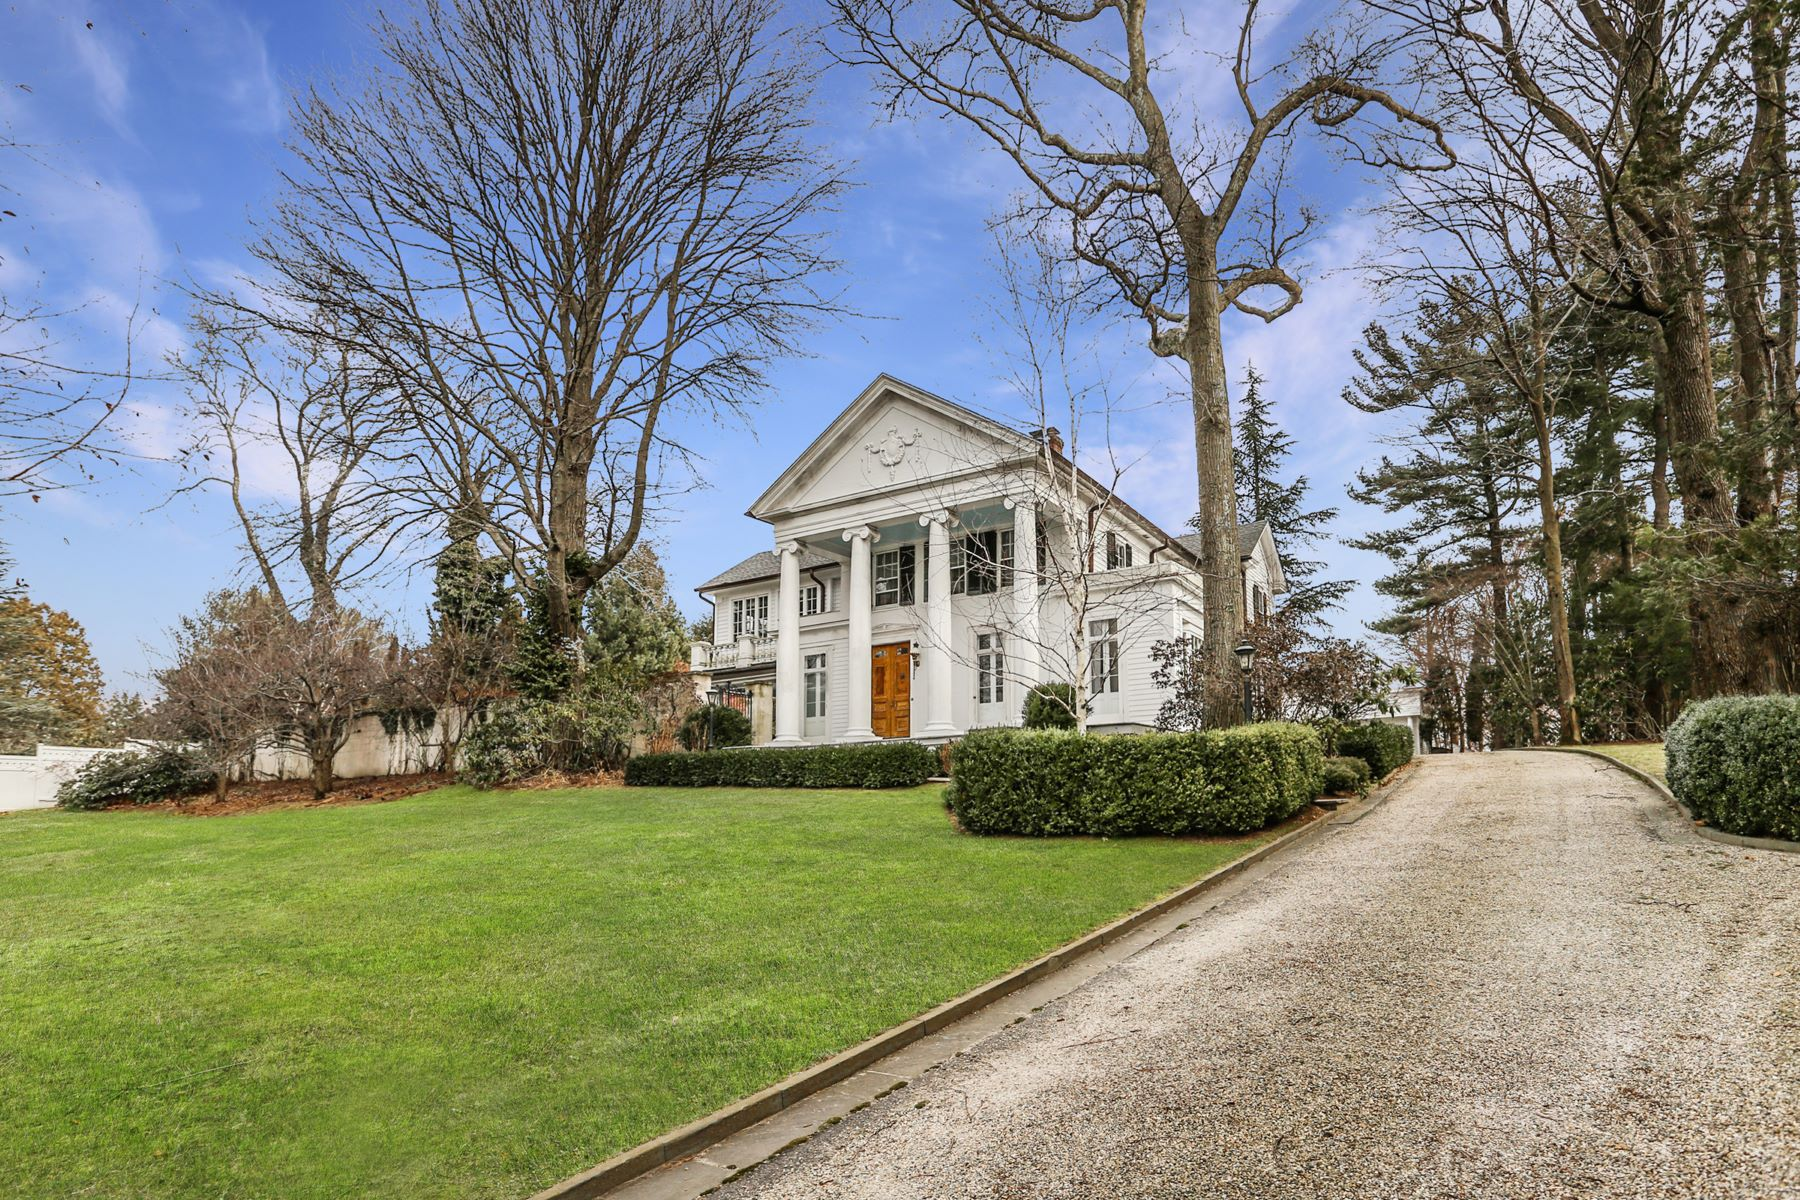 Single Family Homes for Sale at Stately Greek Revival on Sasco Hill 817 Sasco Hill Road Fairfield, Connecticut 06824 United States